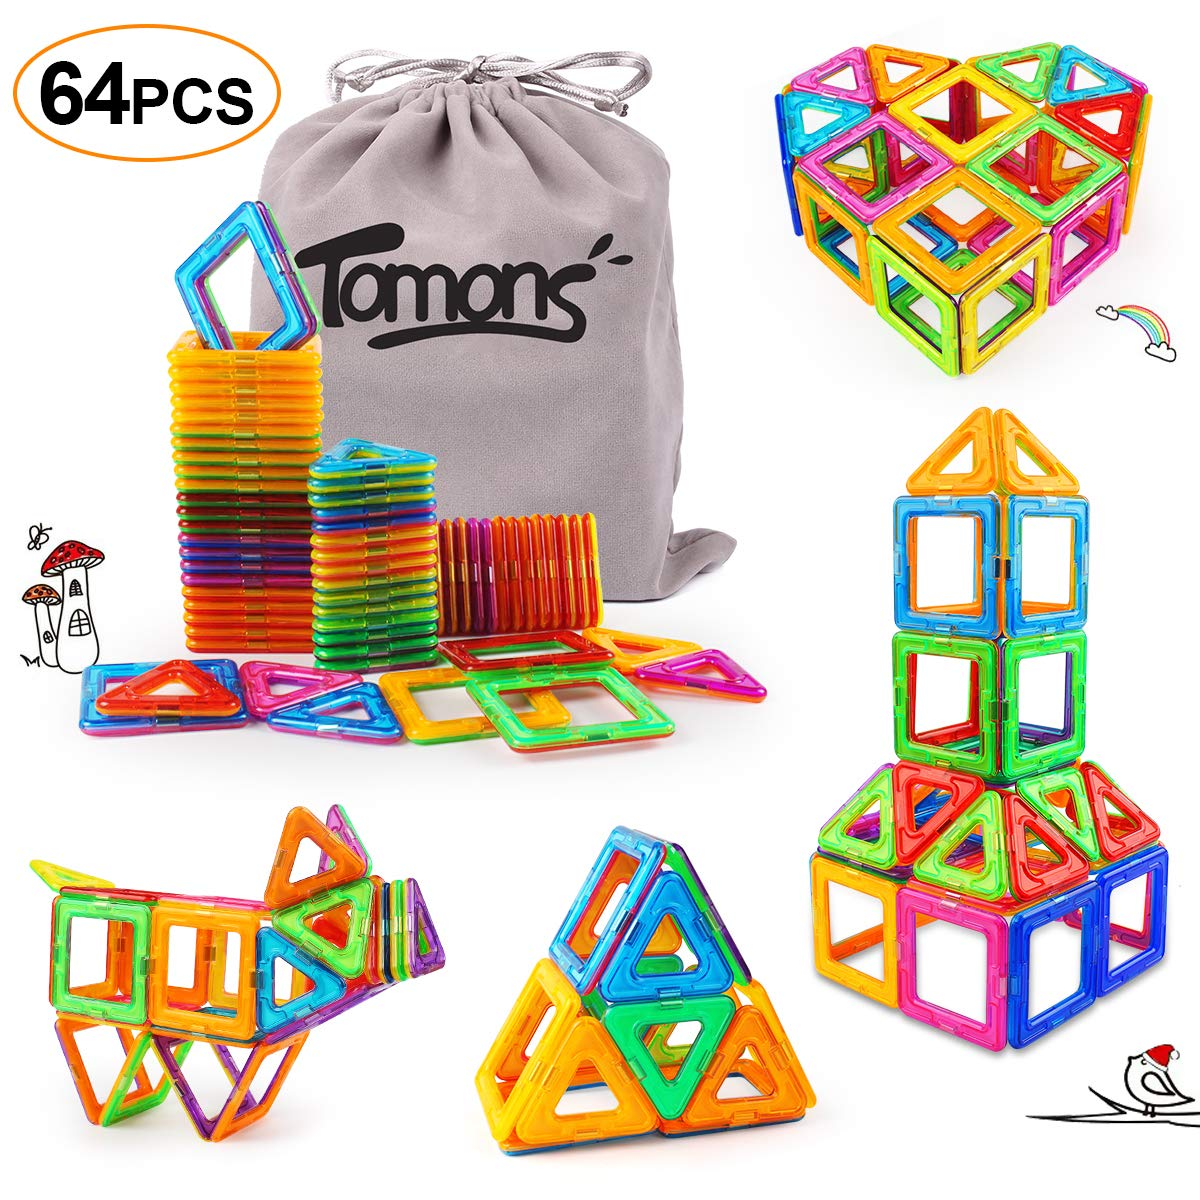 Tomons Magnetic Building Blocks Set, Magnetic Tiles Educational Construction Building Toys for Boys and Girls - 64 pcs by Tomons